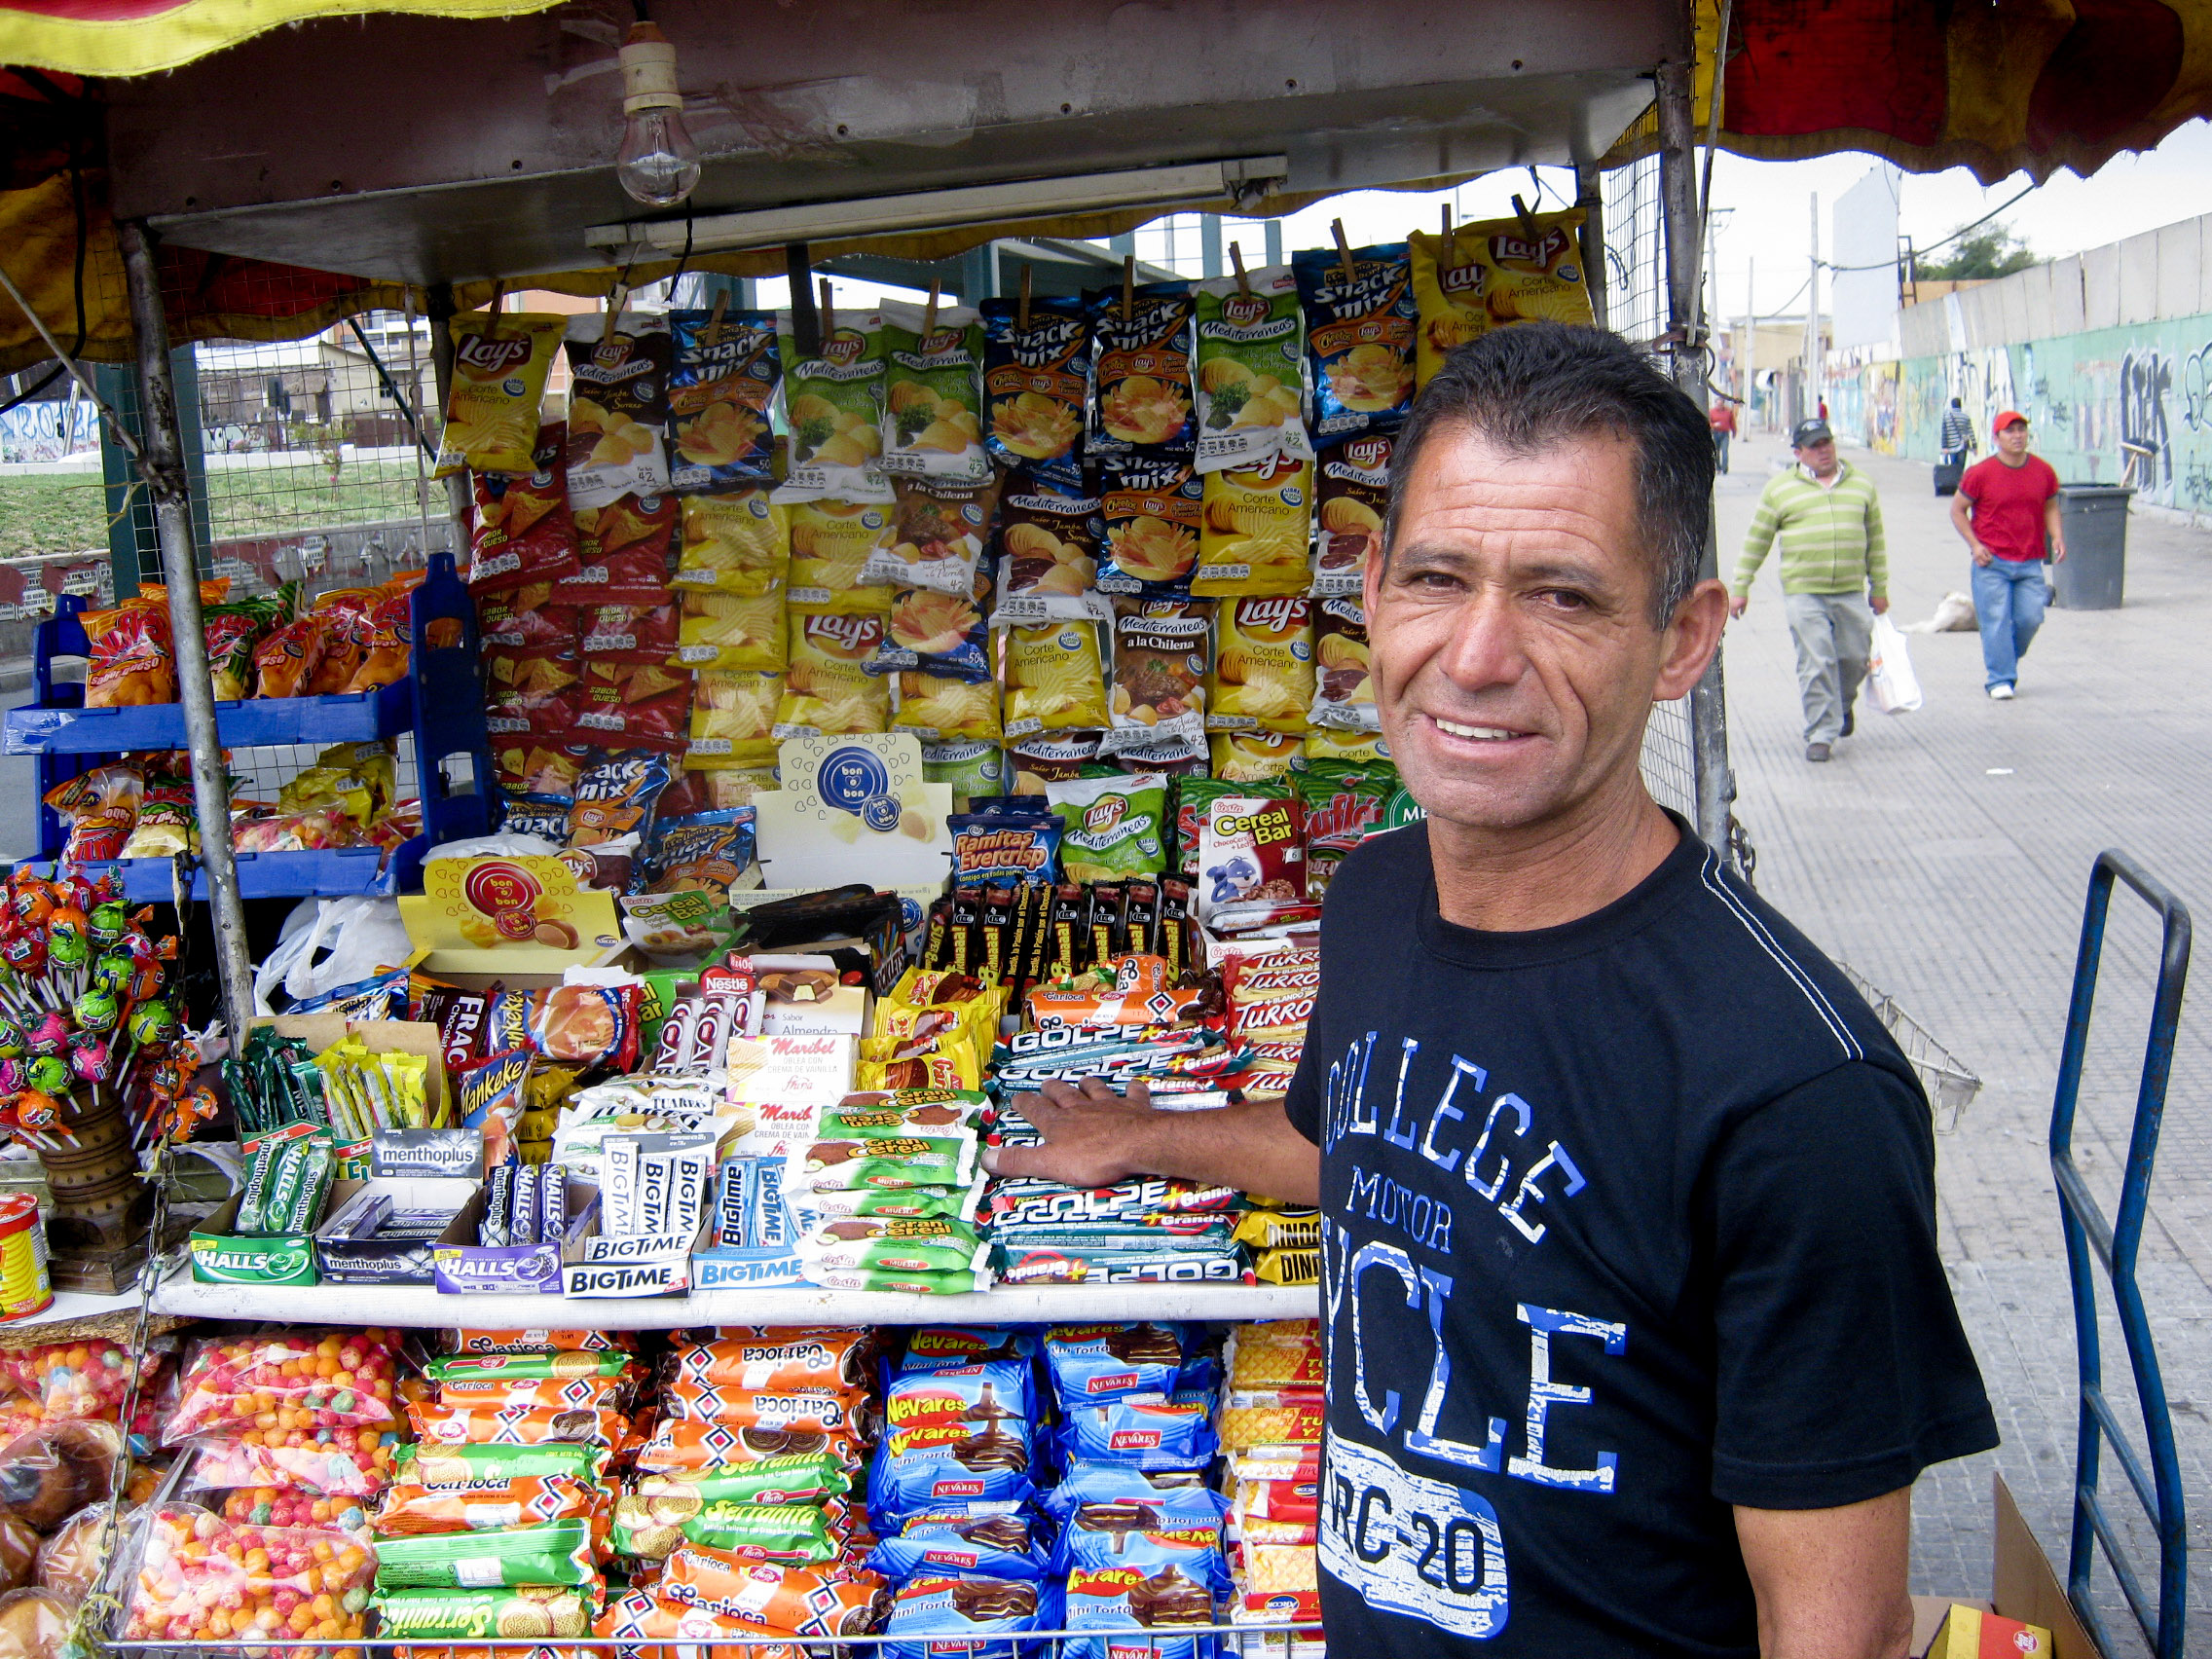 Street vendor in Chile selected for MEPS program